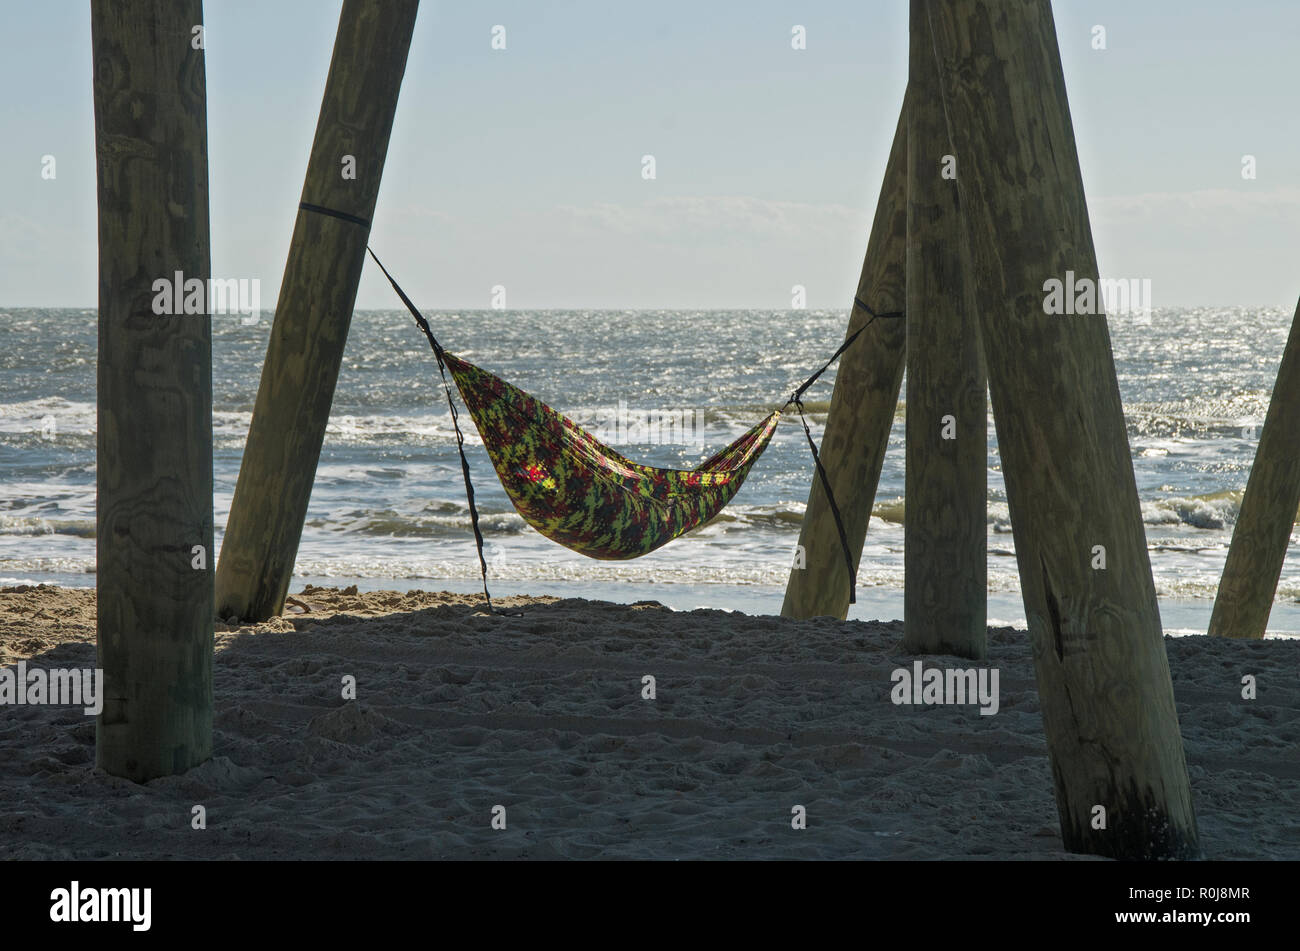 A person uses a hammock to spend a late November Day resting at the beach - Stock Image